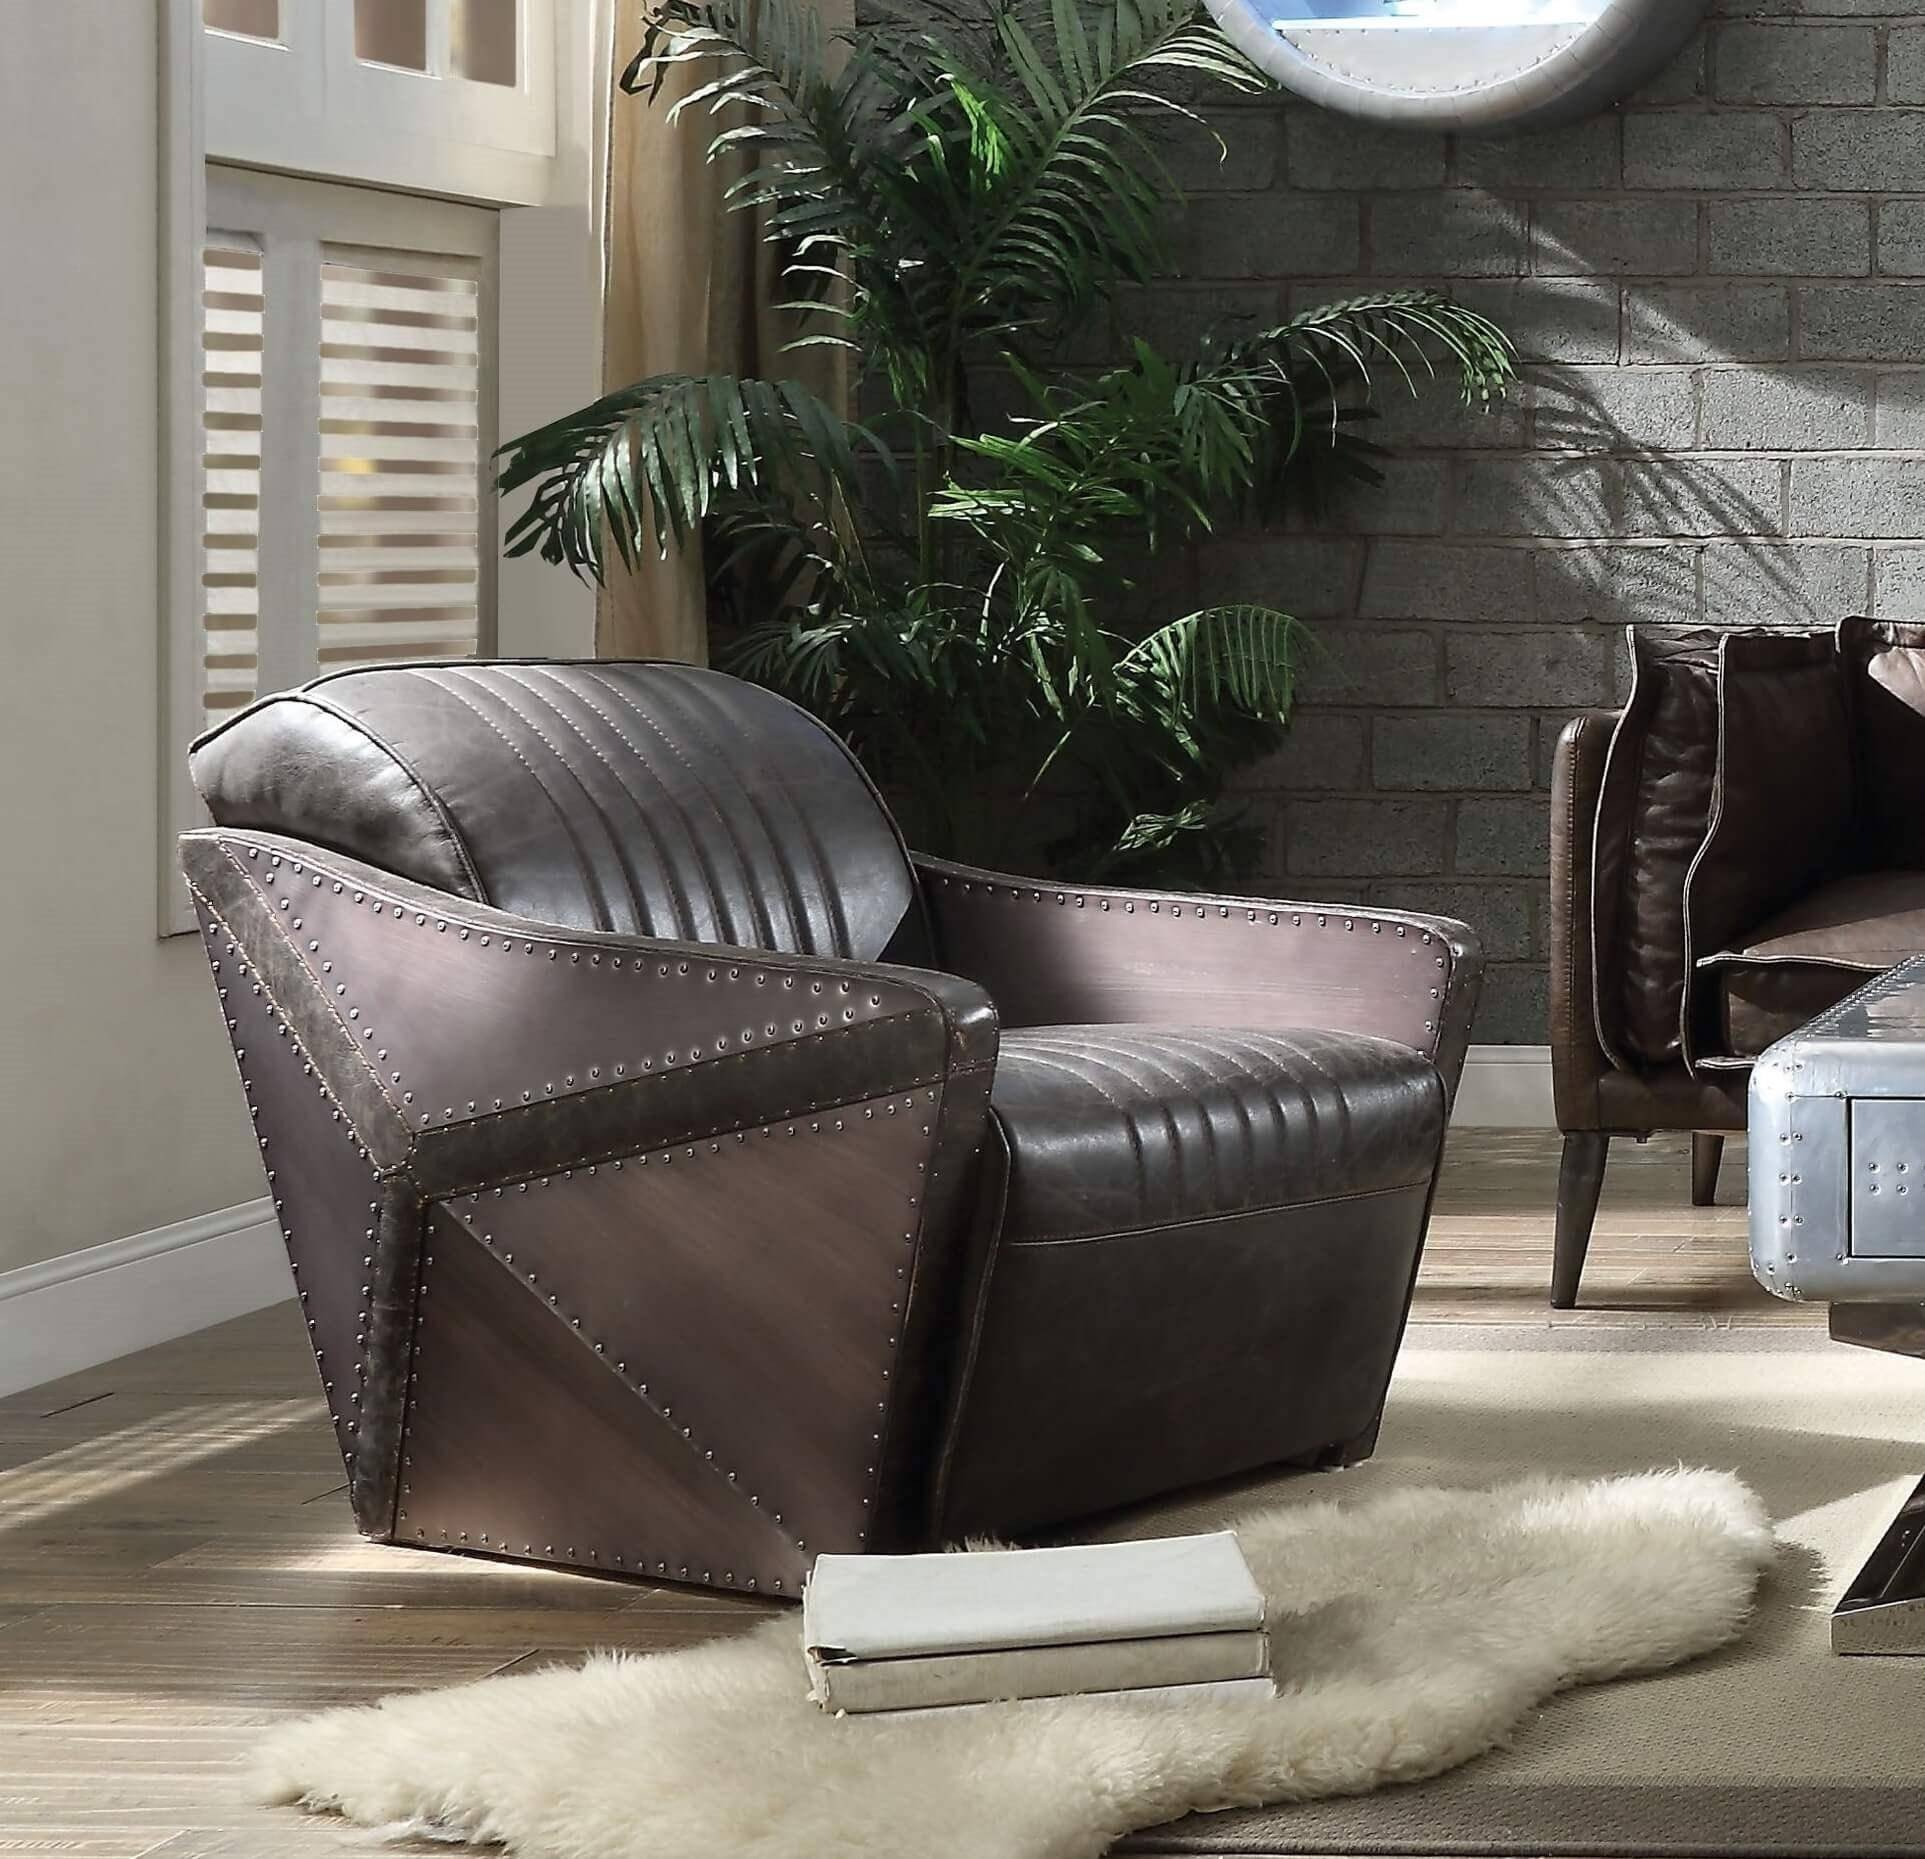 Bedroom Chairs for Sale Elegant Chocolate top Grain Leather sofa Set 4p Porchester